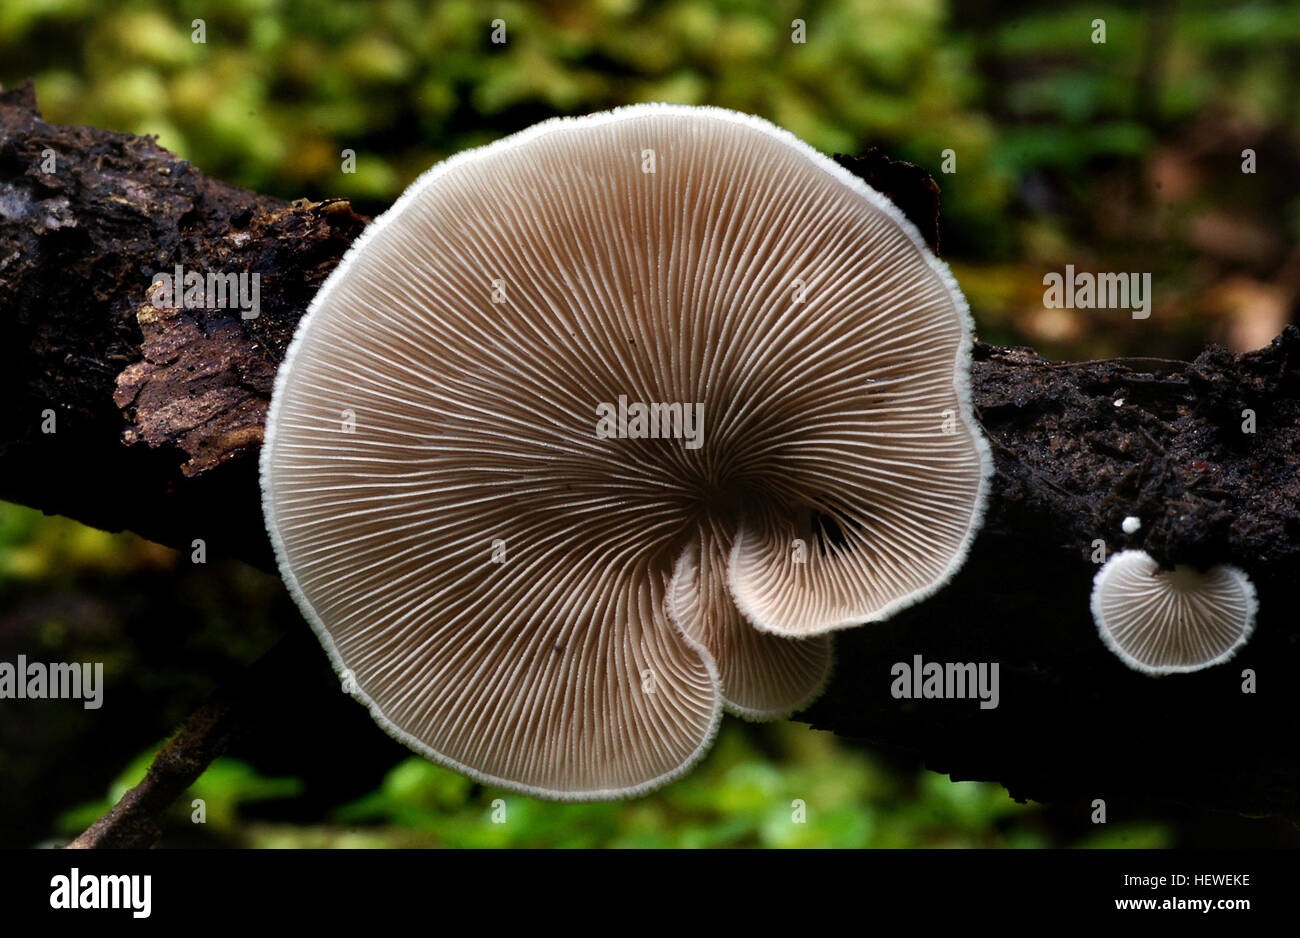 Crepidotus versutus, commonly known as the evasive agaric, is a species of fungi in the family Crepidotaceae. It - Stock Image